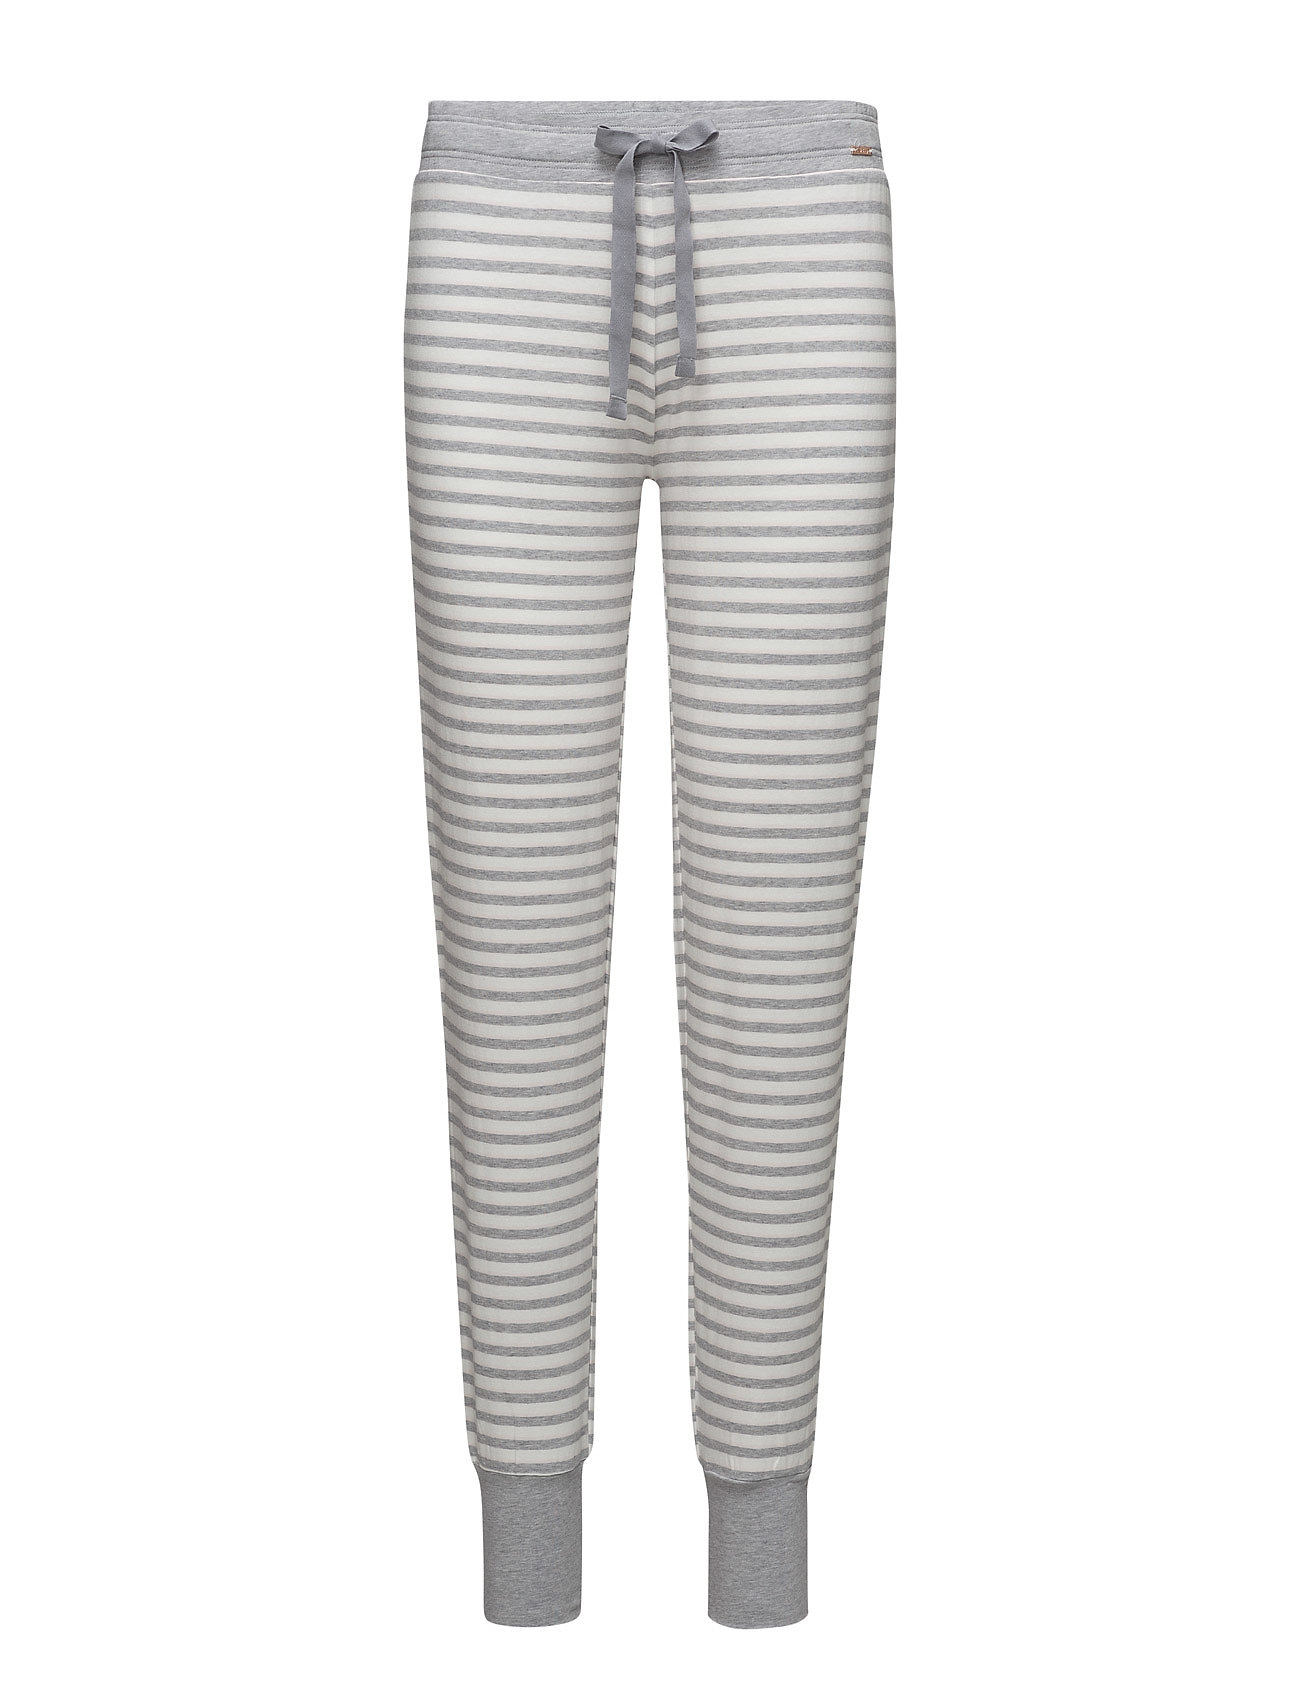 Skiny L. pants long - IVORY STRIPE